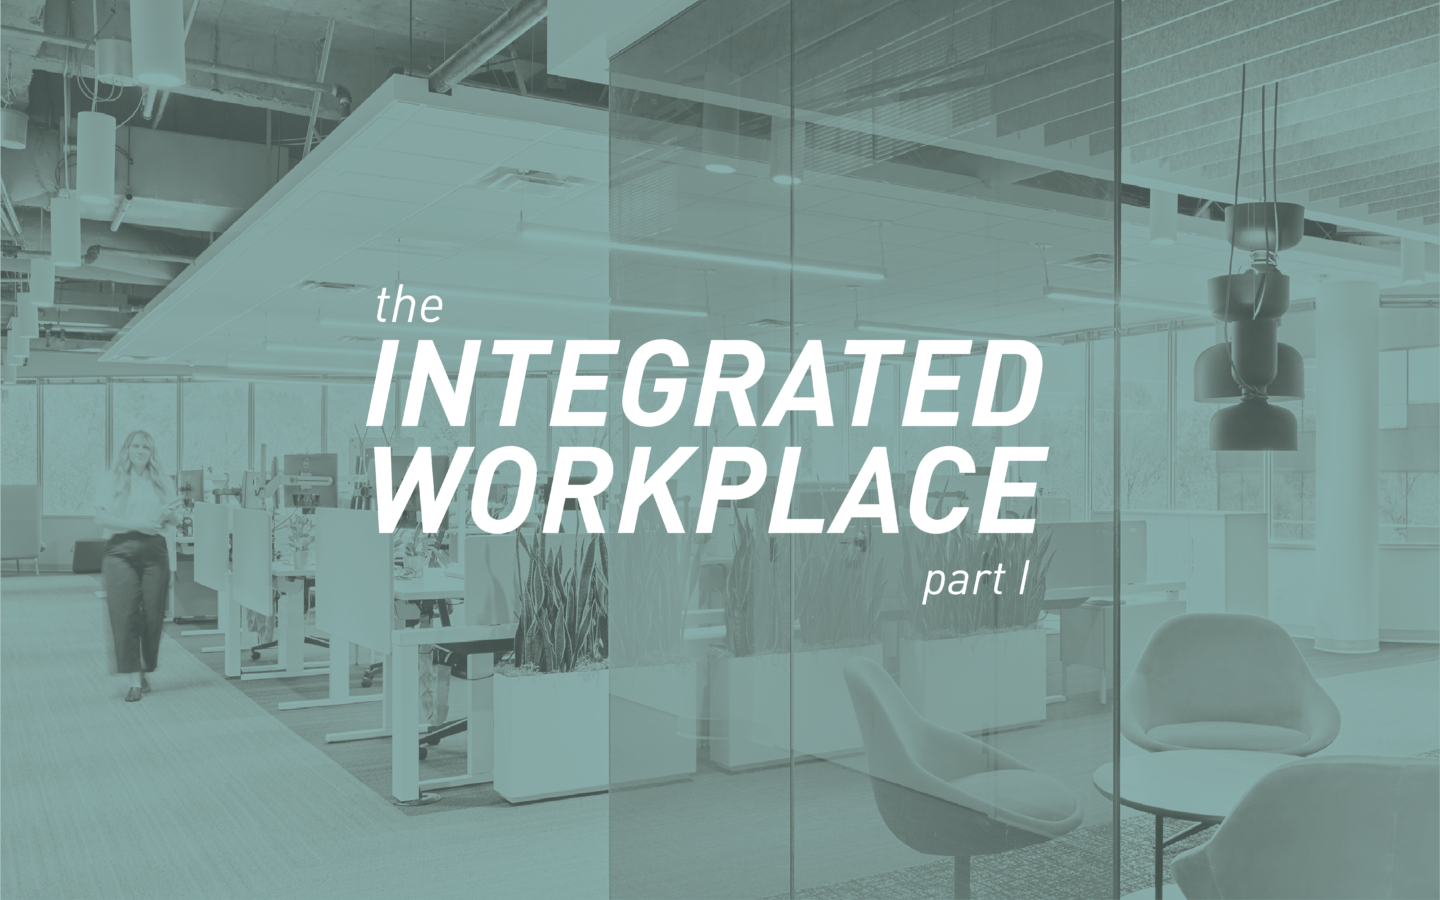 The Integrated Workplace